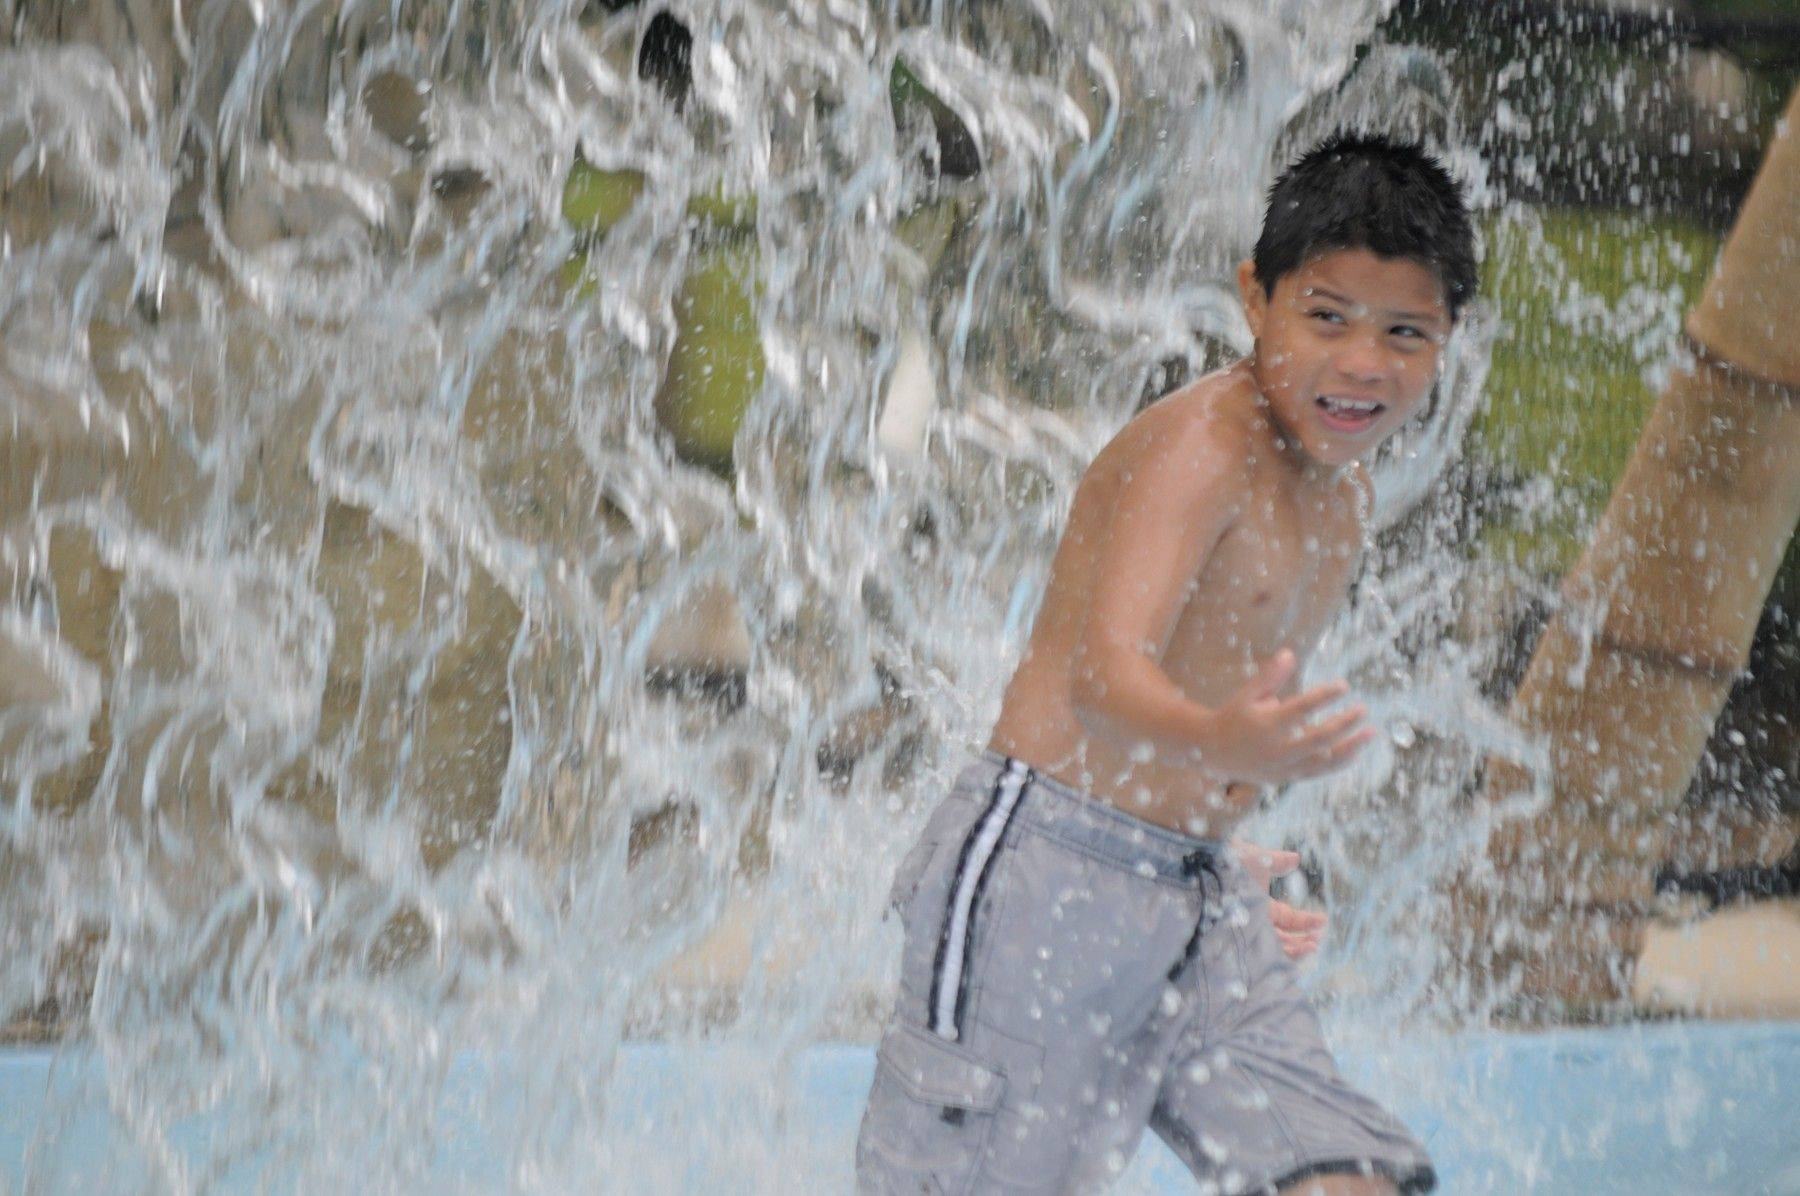 The cascading waterfall at Phillips Park Family Aquatic Center is a favorite for kids who want to be cool in the heat of summer.